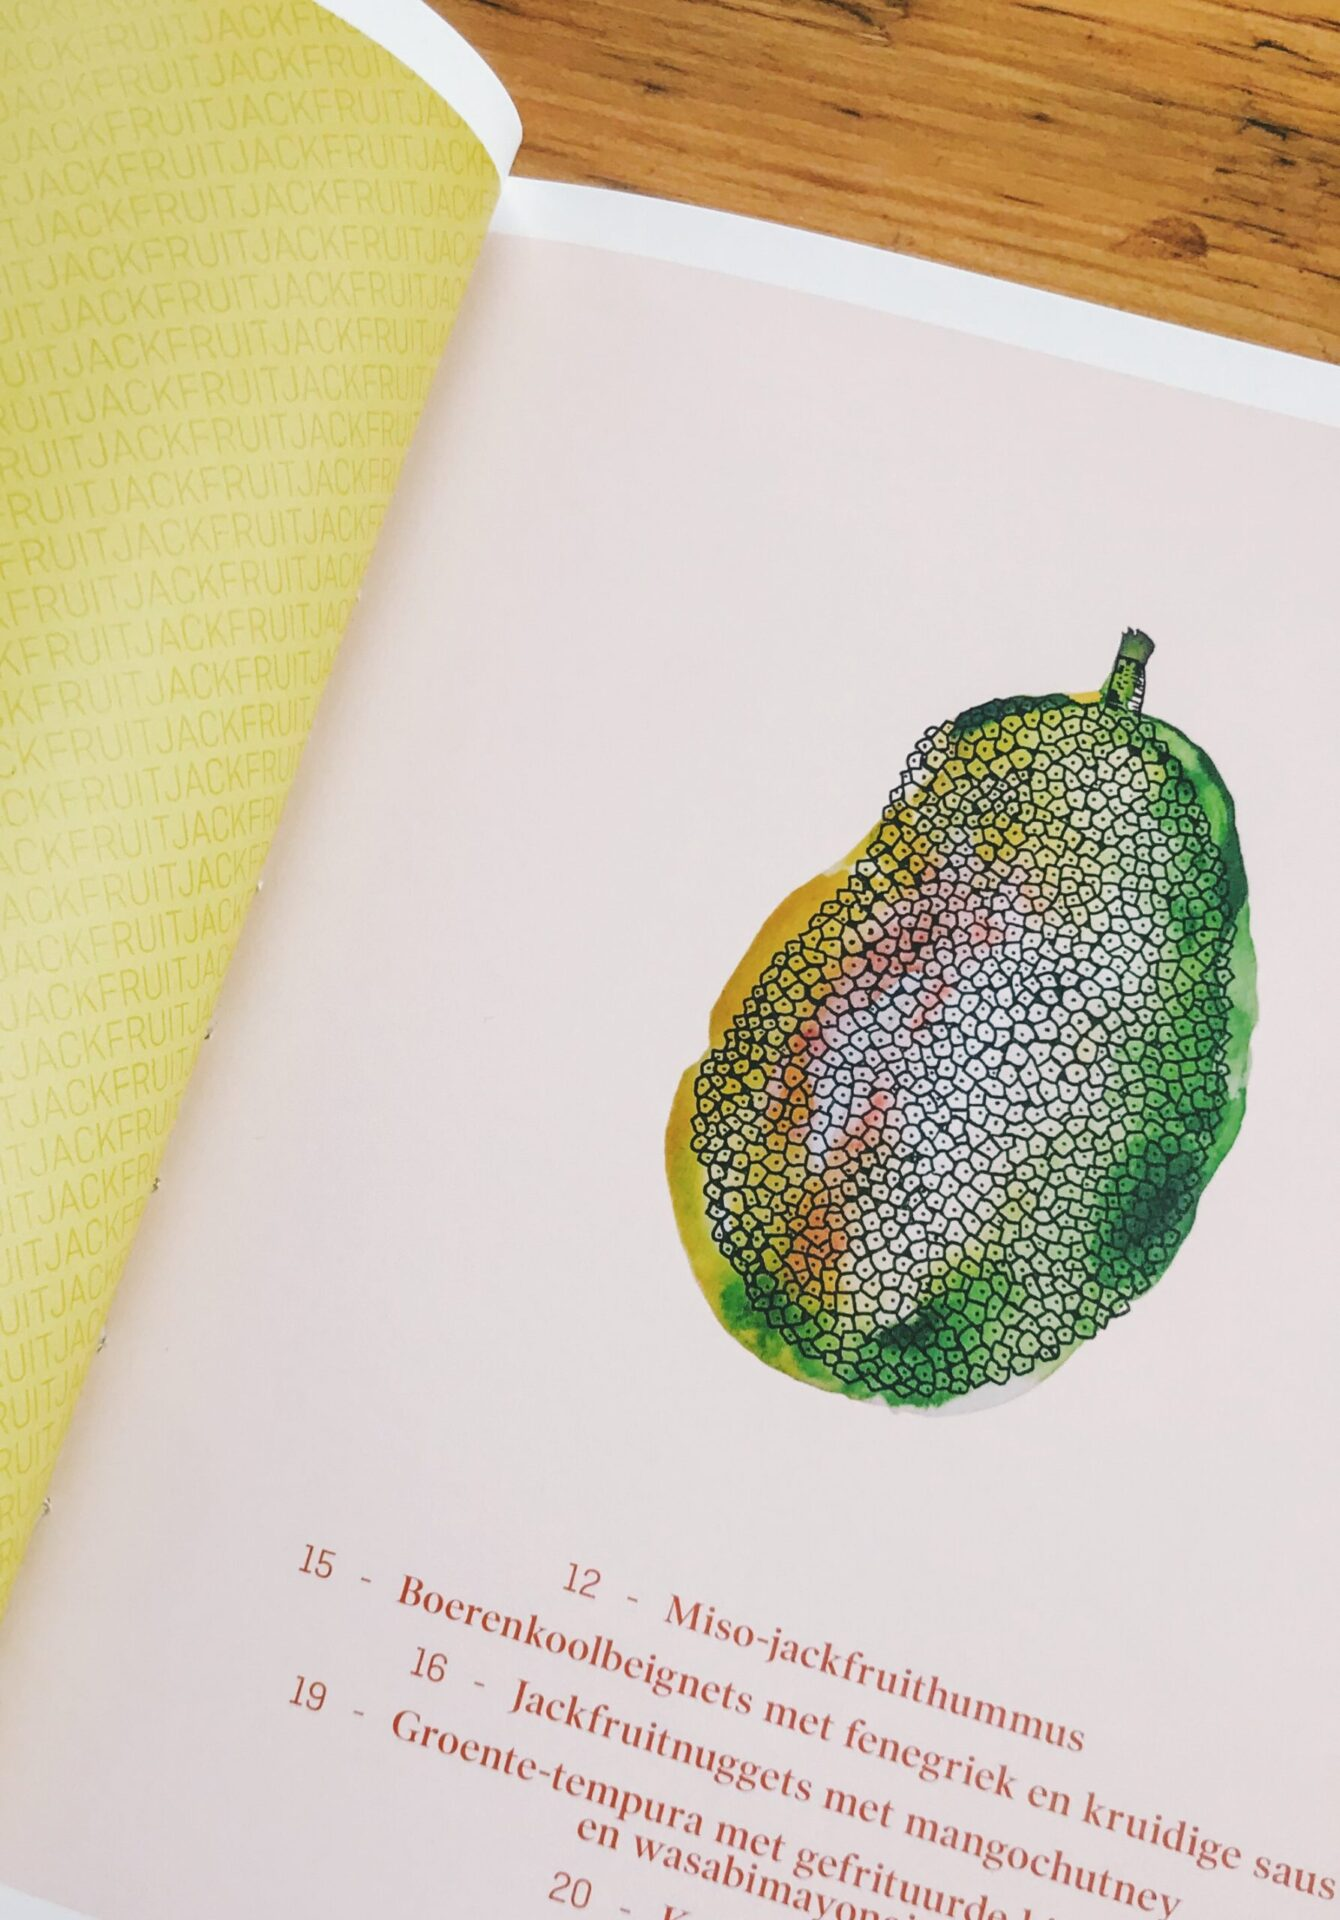 jackfruit-illustrations-cook-book-a-la-gonda-scaled